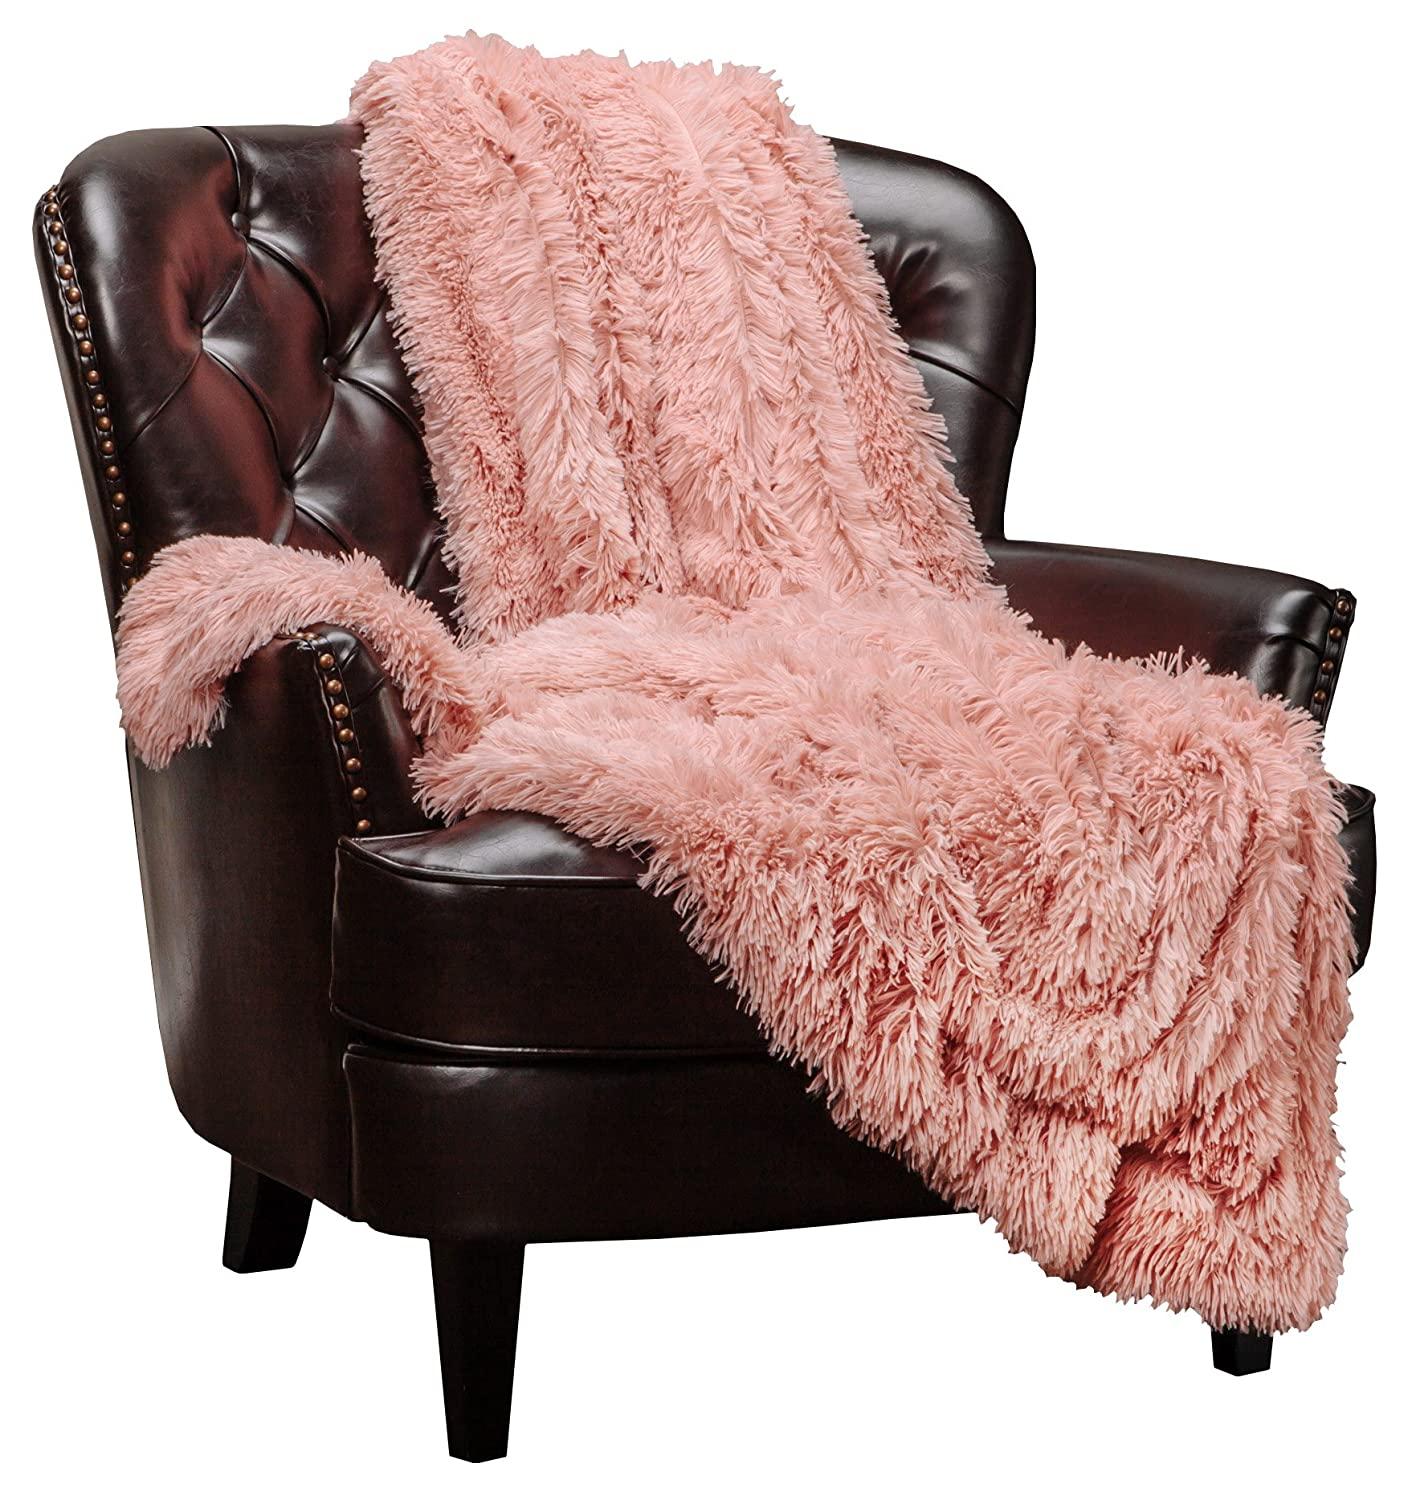 "Chanasya Super Soft Shaggy Longfur Throw Blanket | Snuggly Fuzzy Faux Fur Lightweight Warm Elegant Cozy Plush Sherpa Microfiber Blanket | for Couch Bed Chair Photo Props - 50""x 65"" - Peach"